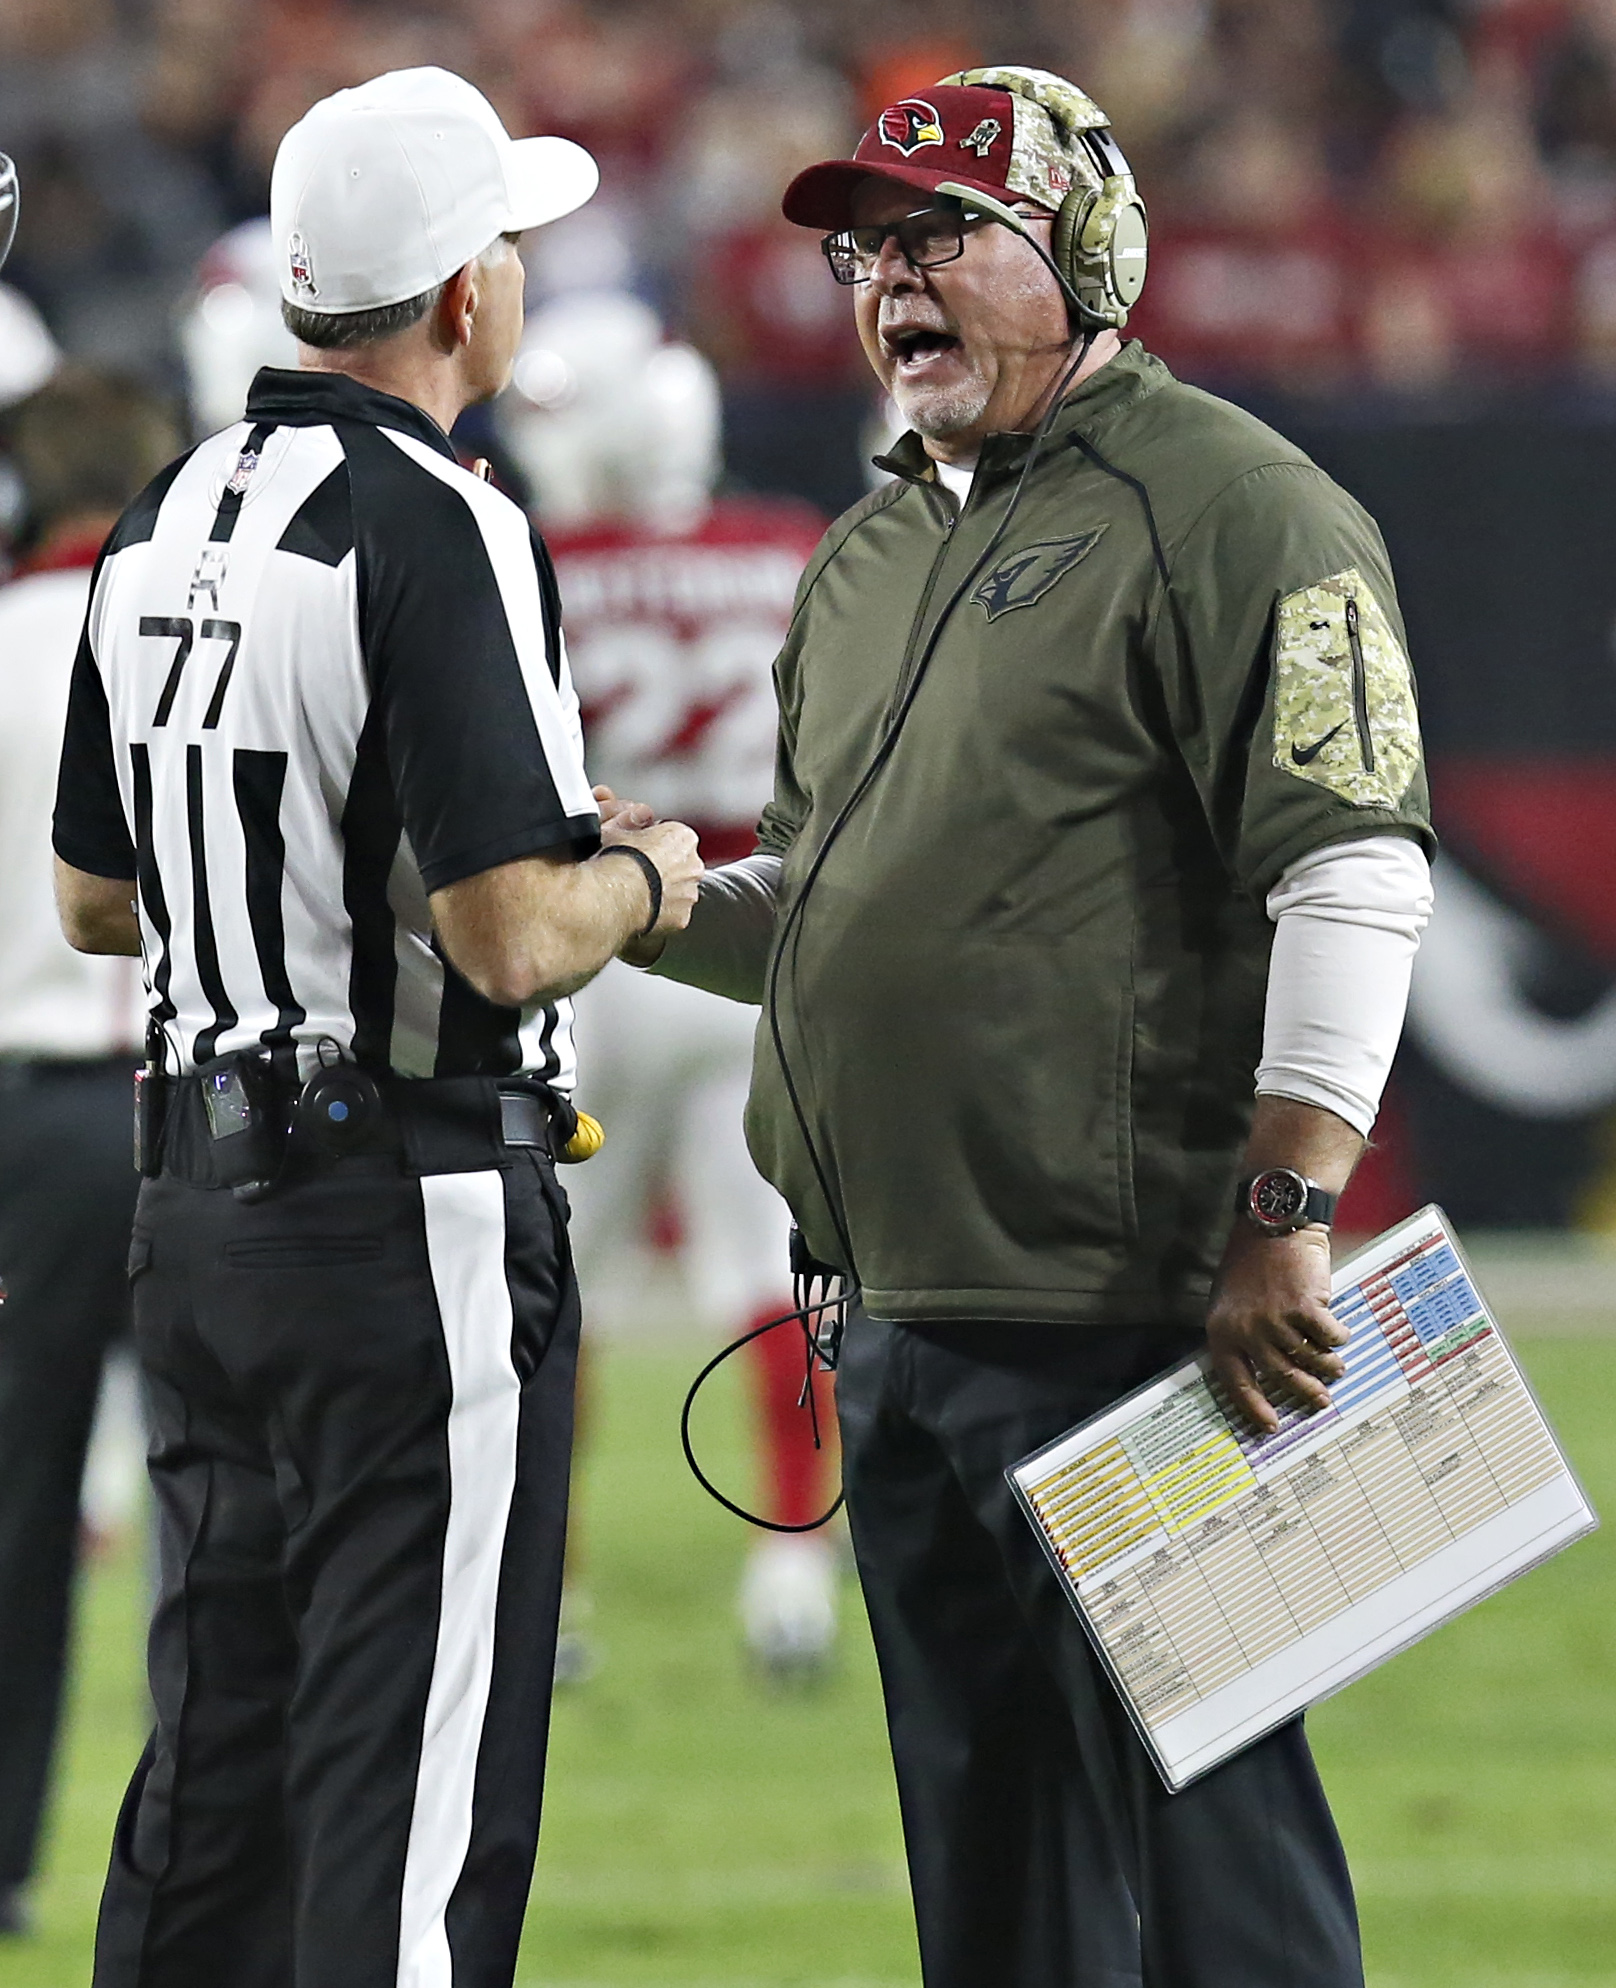 Arizona Cardinals head coach Bruce Arians talks with referee Terry McAulay (77) during the first half of an NFL  football game against the Cincinnati Bengals, Sunday, Nov. 22, 2015, in Glendale, Ariz. (AP Photo/Rick Scuteri)